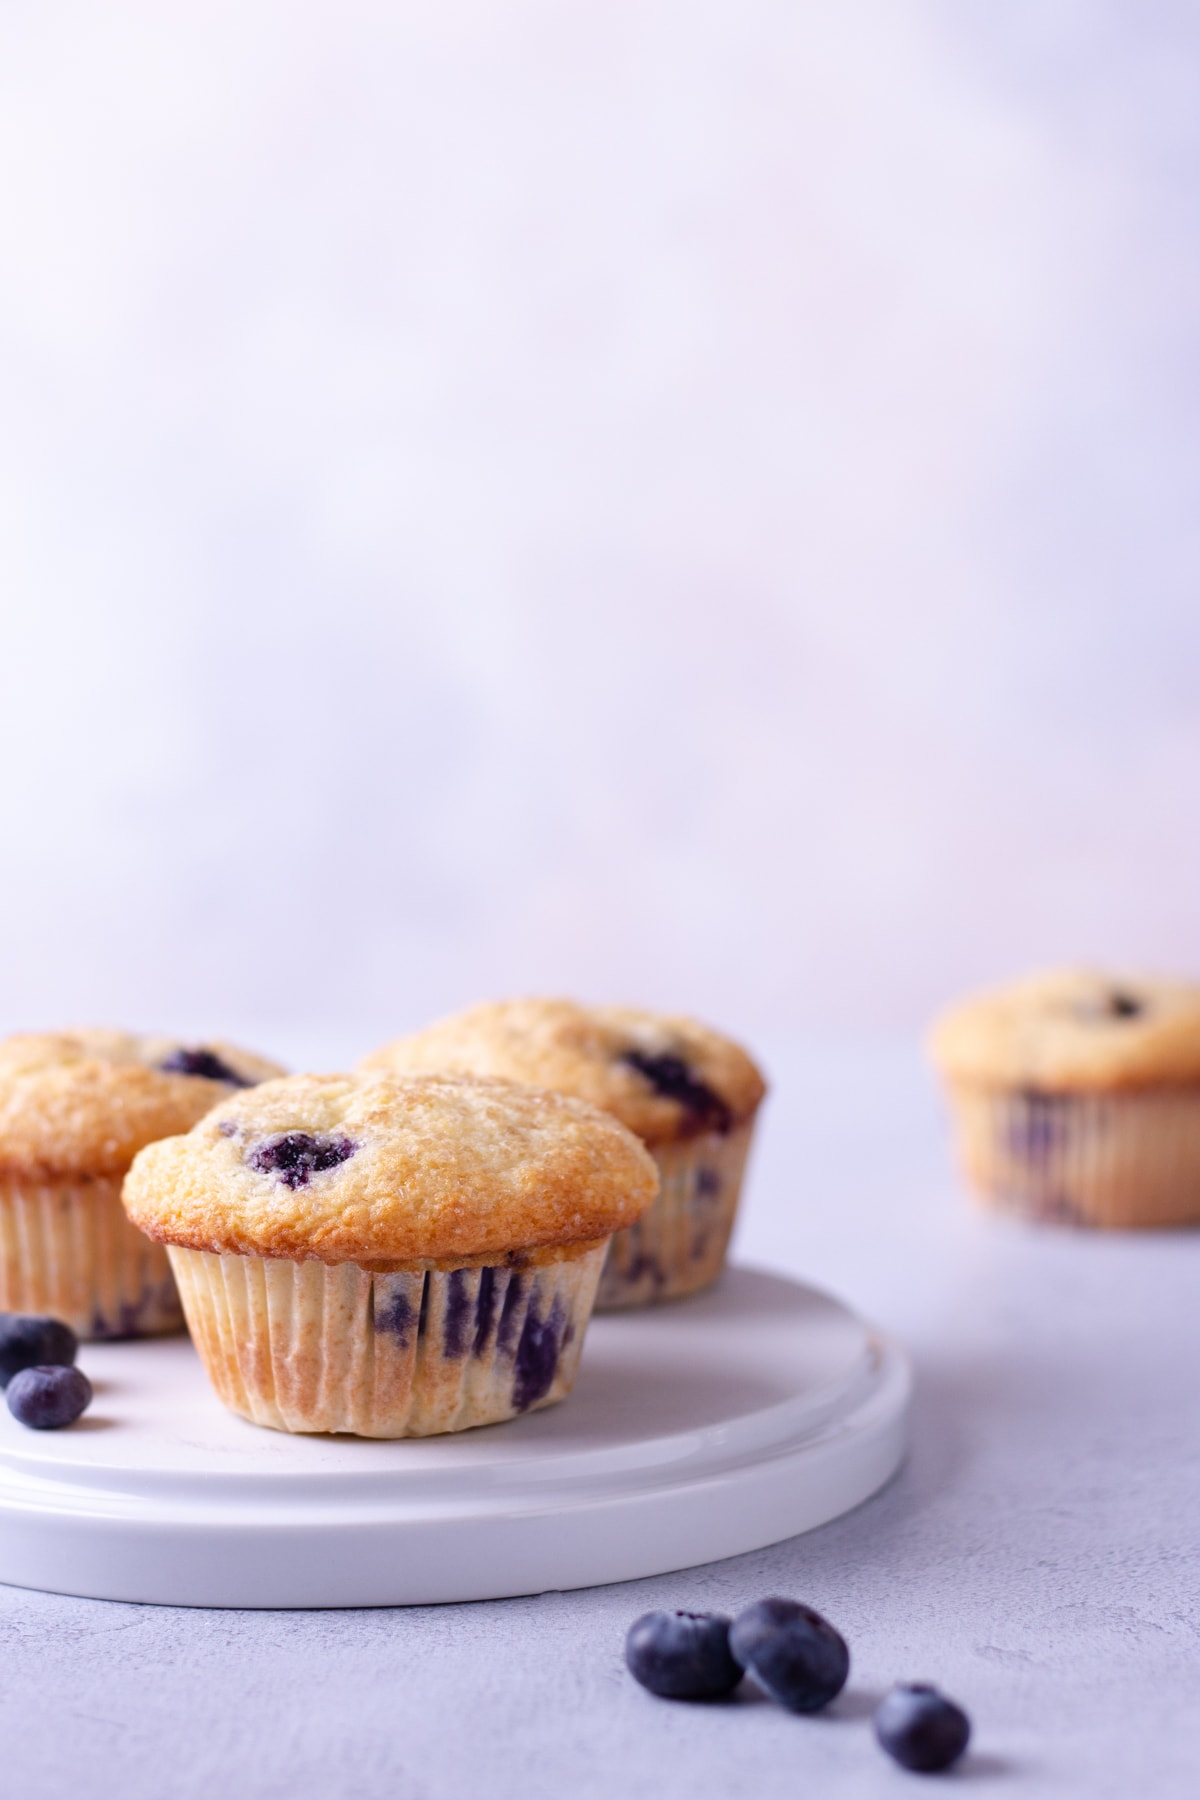 Straight on shot of a plate of Buttermilk Blueberry Muffins with a light blue background.